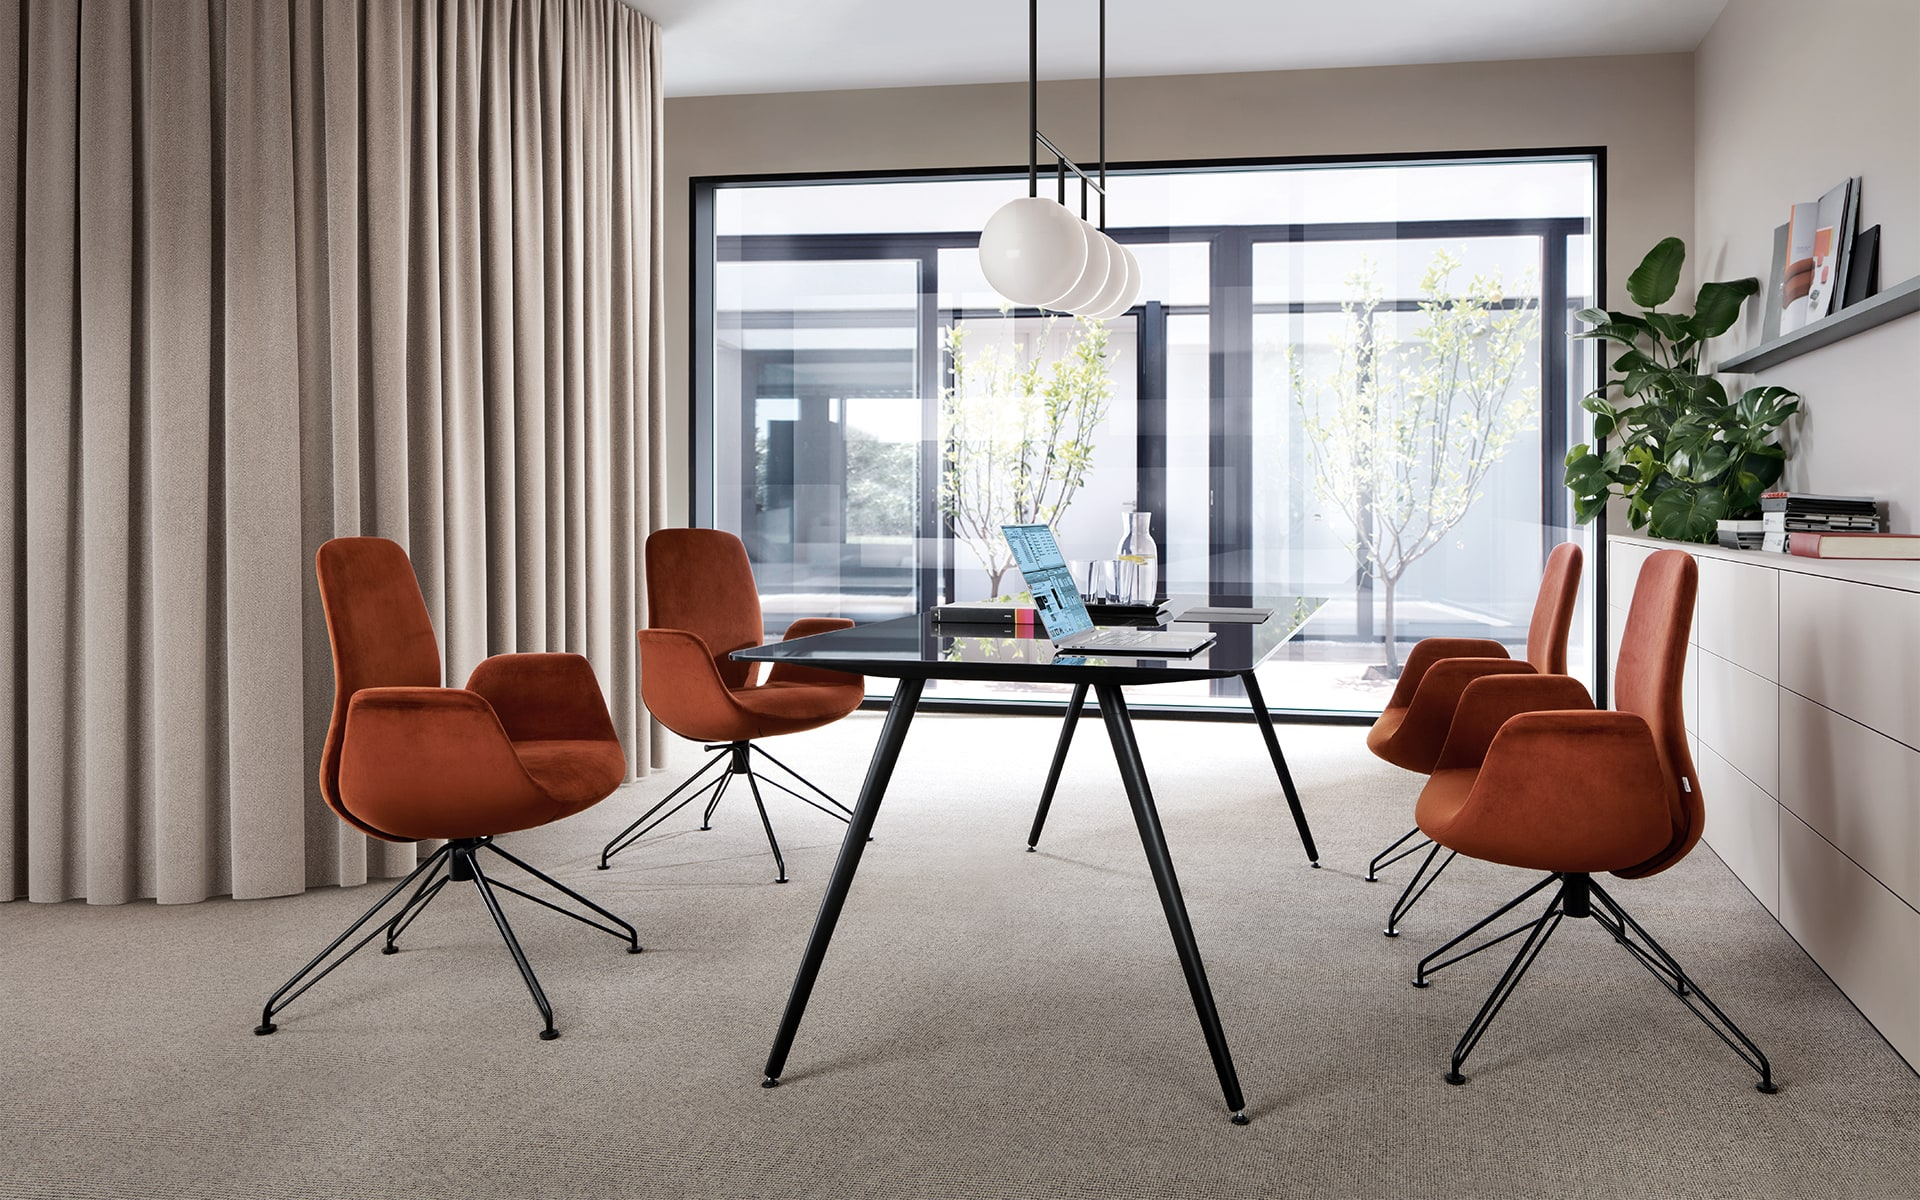 Four rust-red Profim Ellie chairs with black metal legs by ITO Design in modern conference room